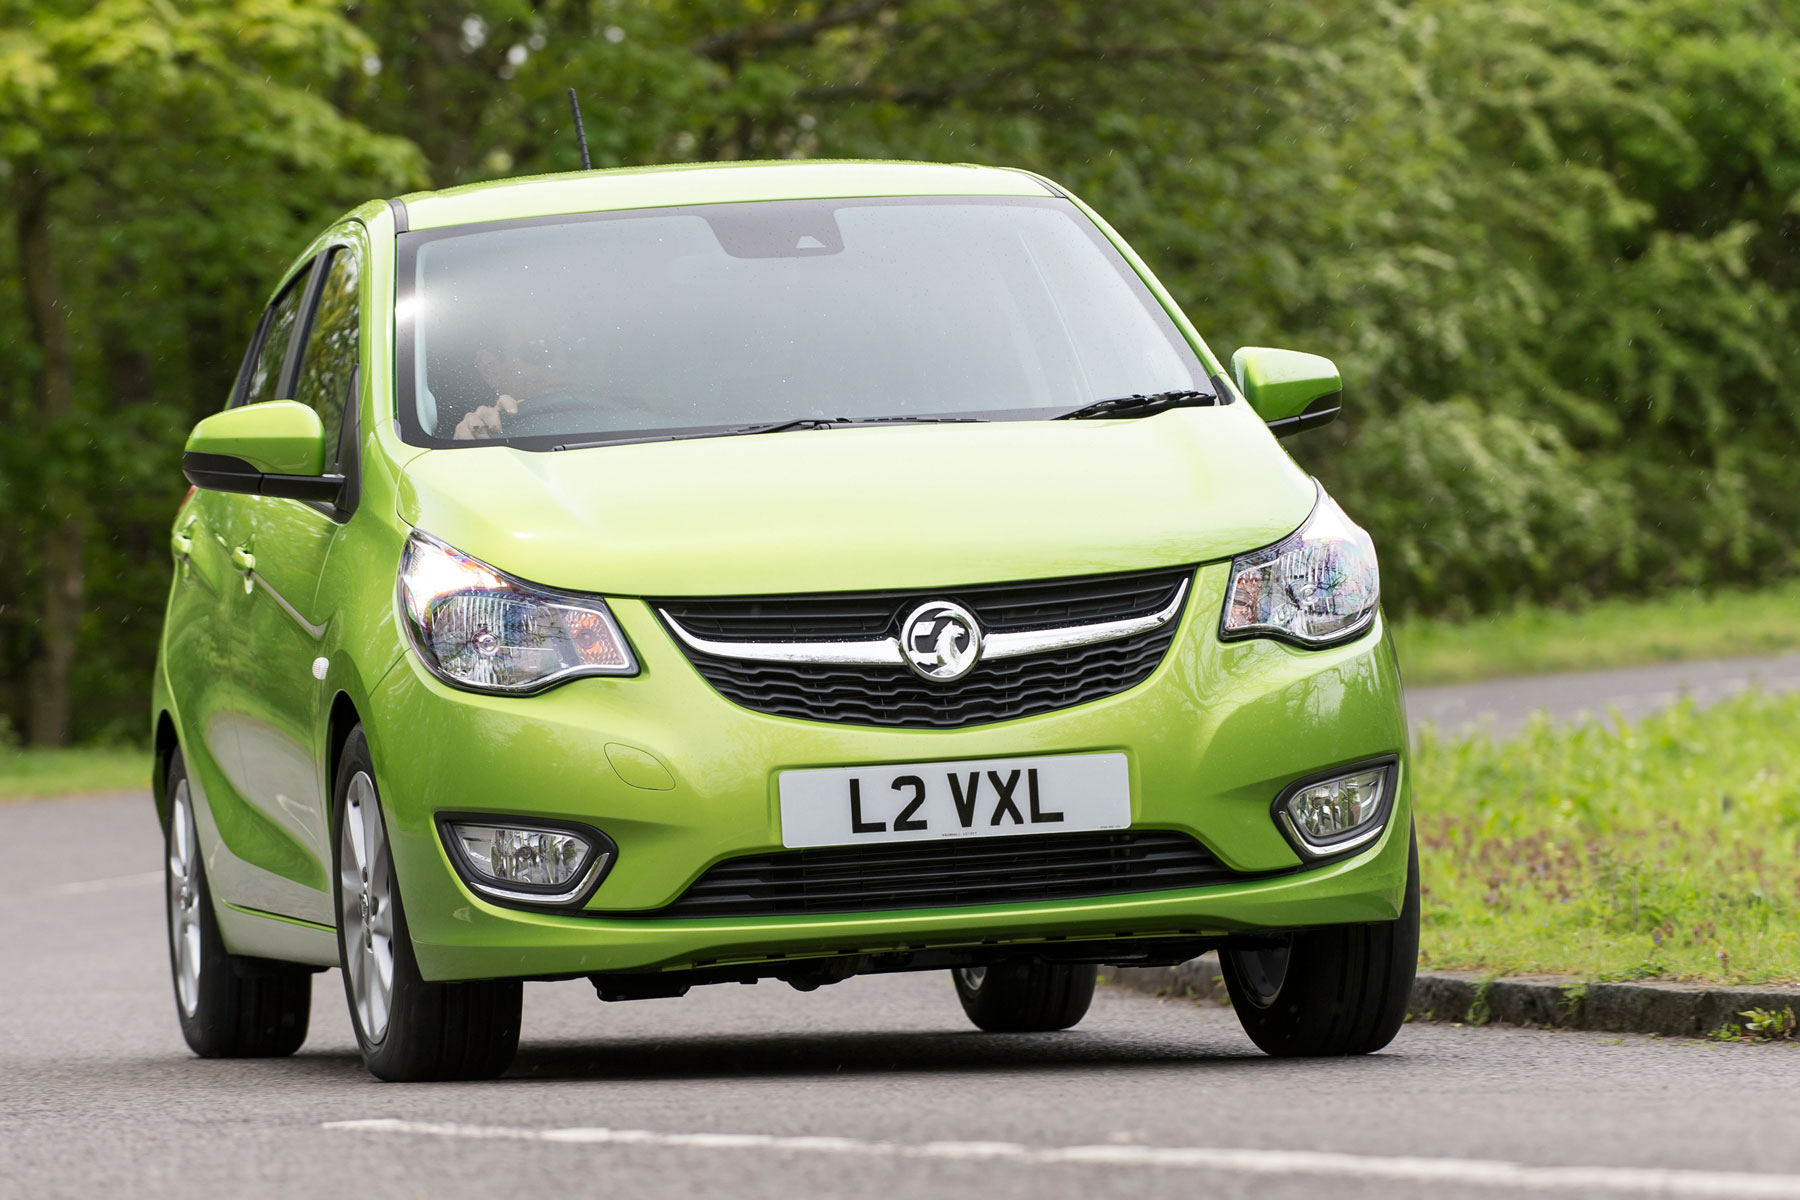 Vauxhall Corsa 1.0T 115 (July 2015): does it beat the Viva?